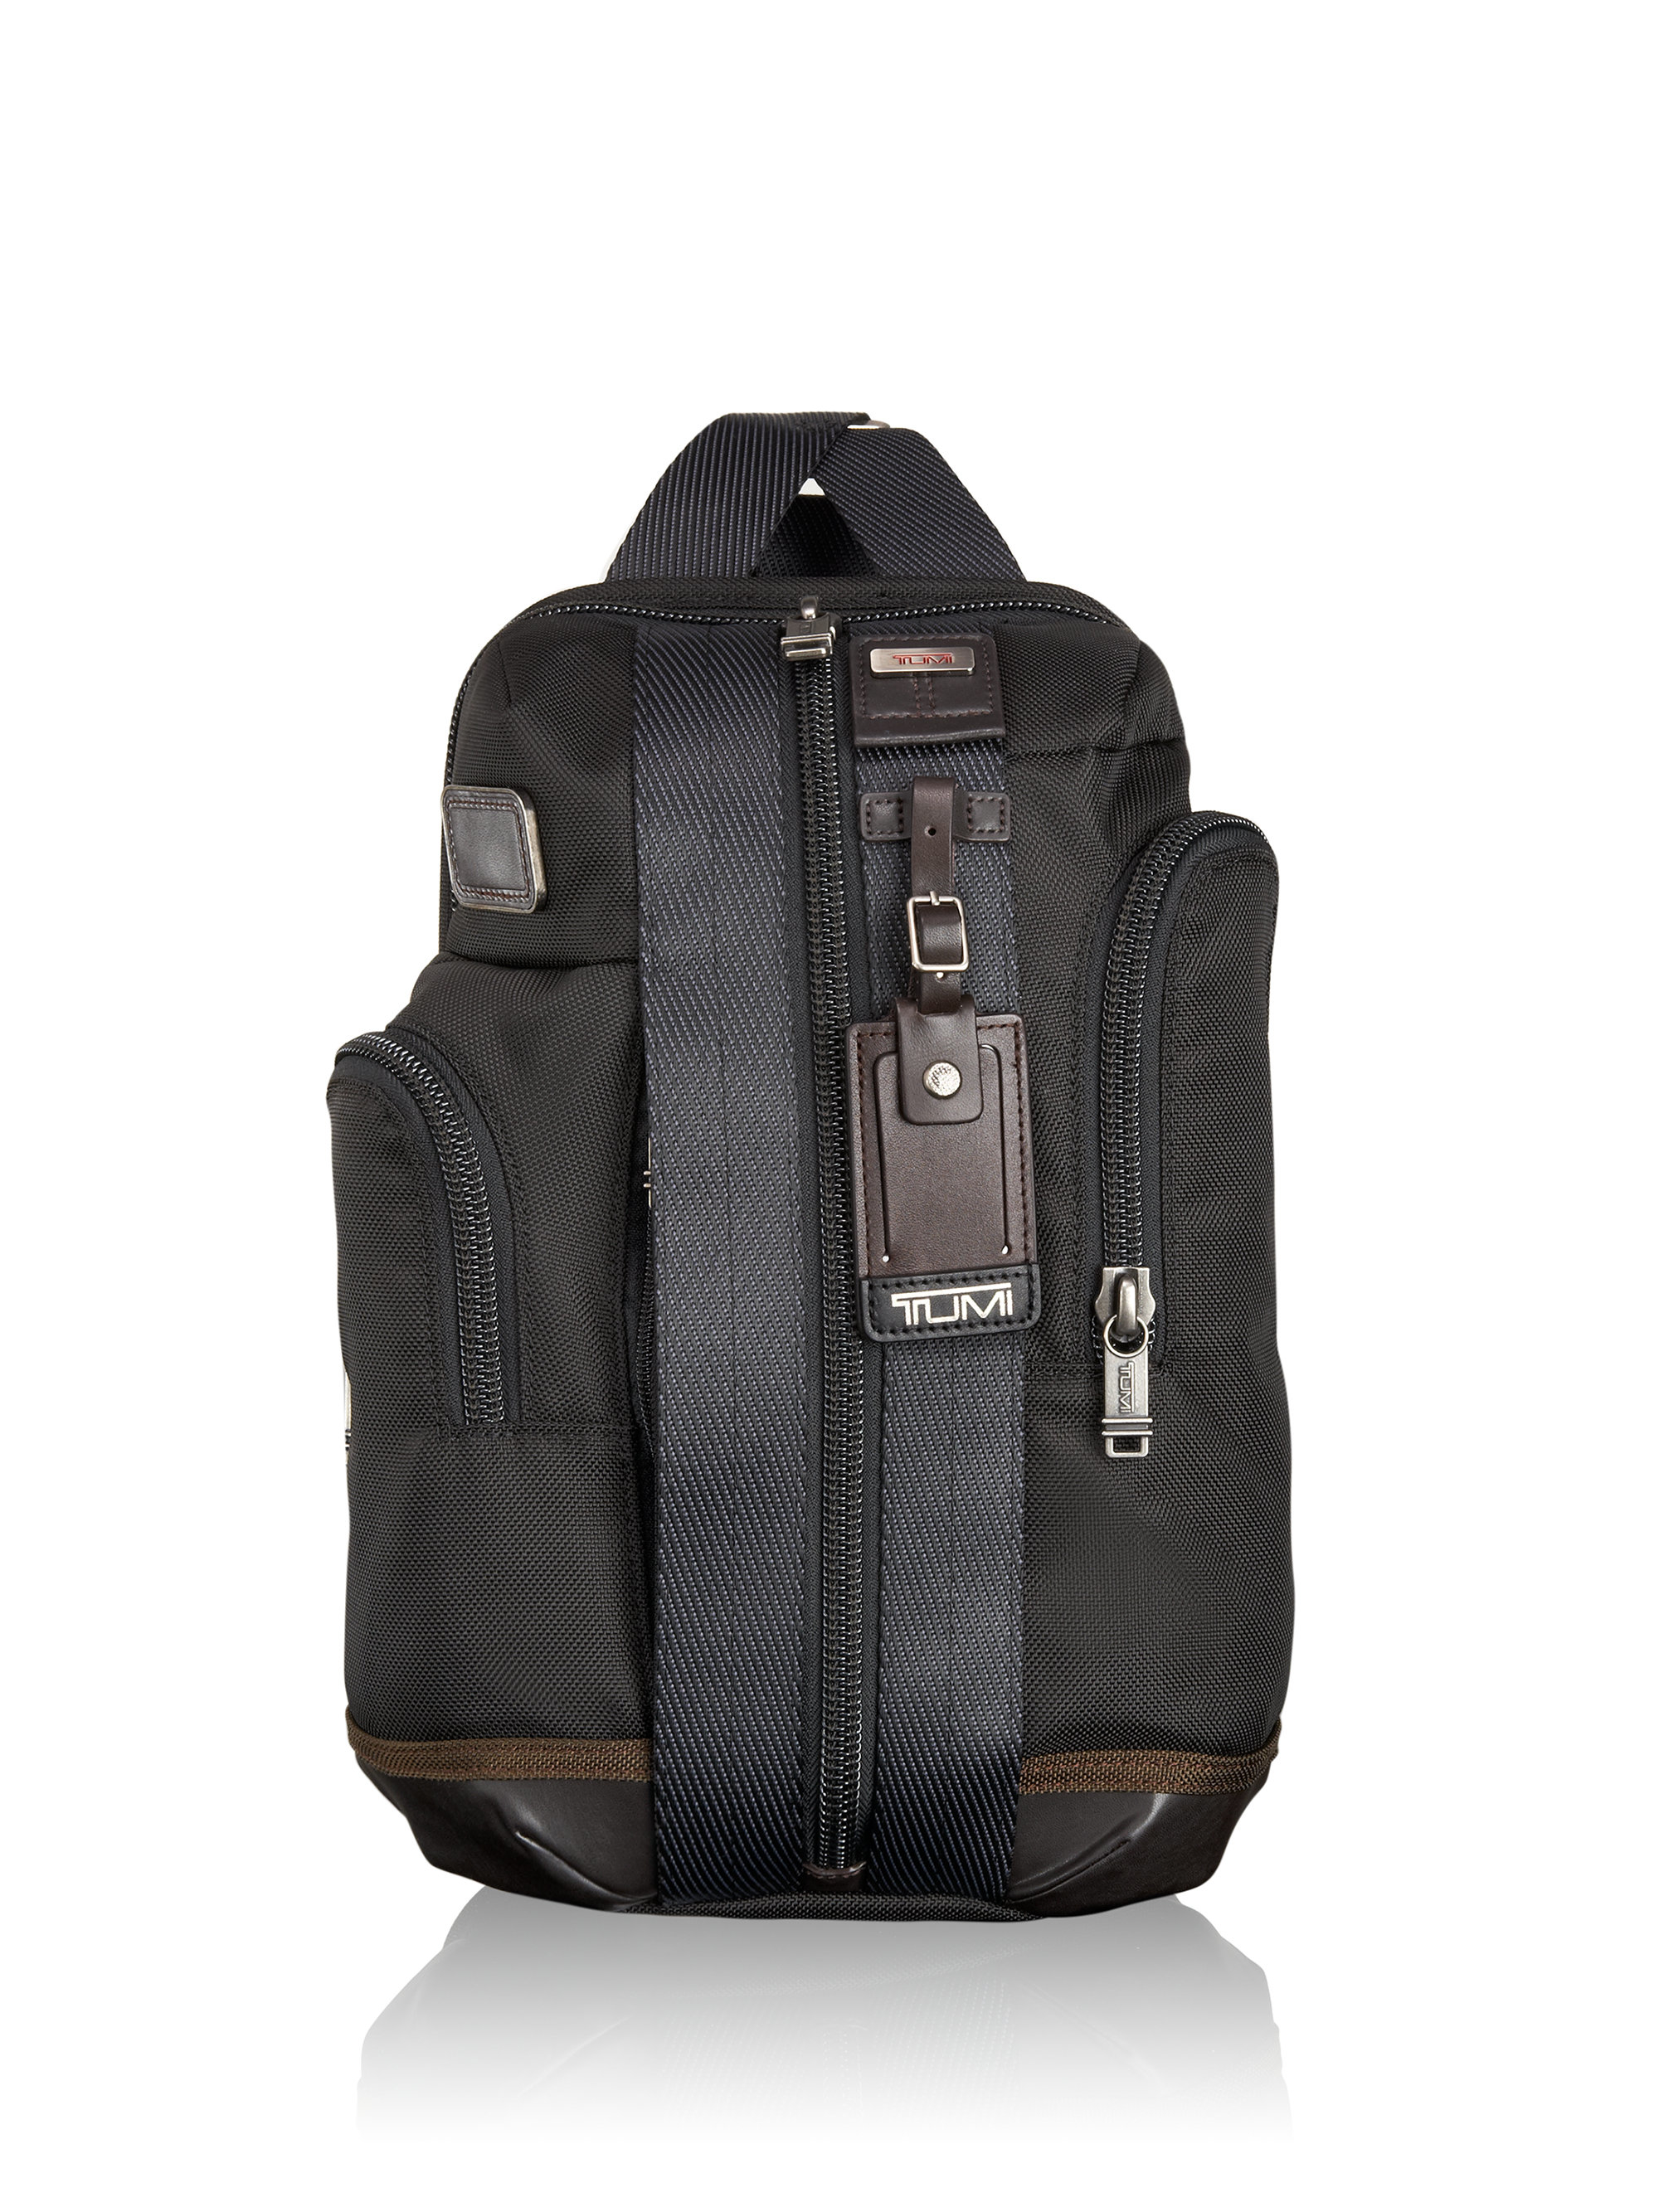 Elegant Tumi Alpha Bravo for Cool Travel Bag Ideas: Tumi Alpha Bravo Messenger | Tumi Alpha Bravo | Tumi Alpha Bravo Kessler